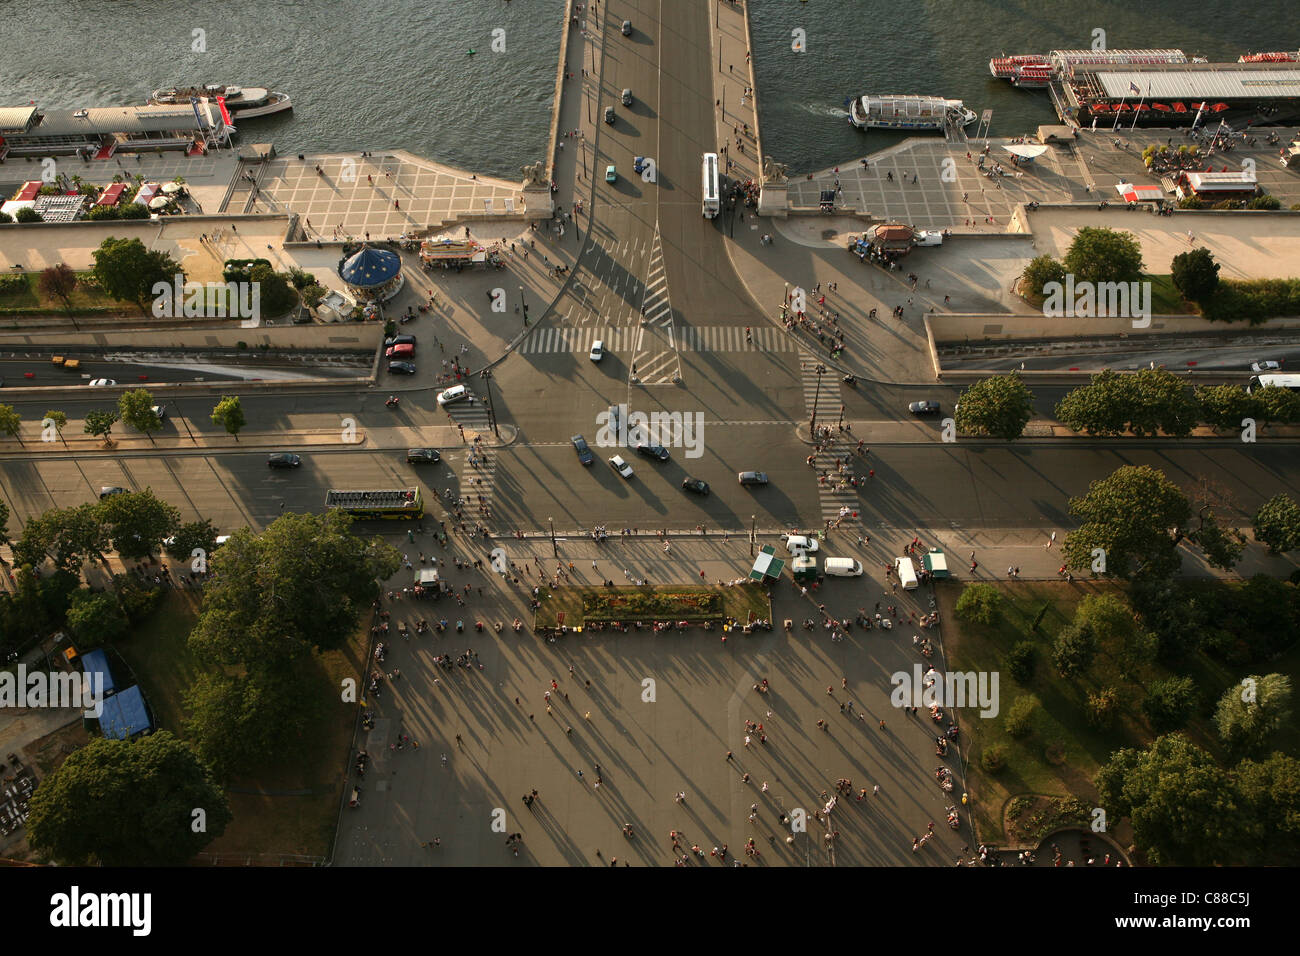 Embankment of the River Seine from the Eiffel Tower in Paris, France. Stock Photo